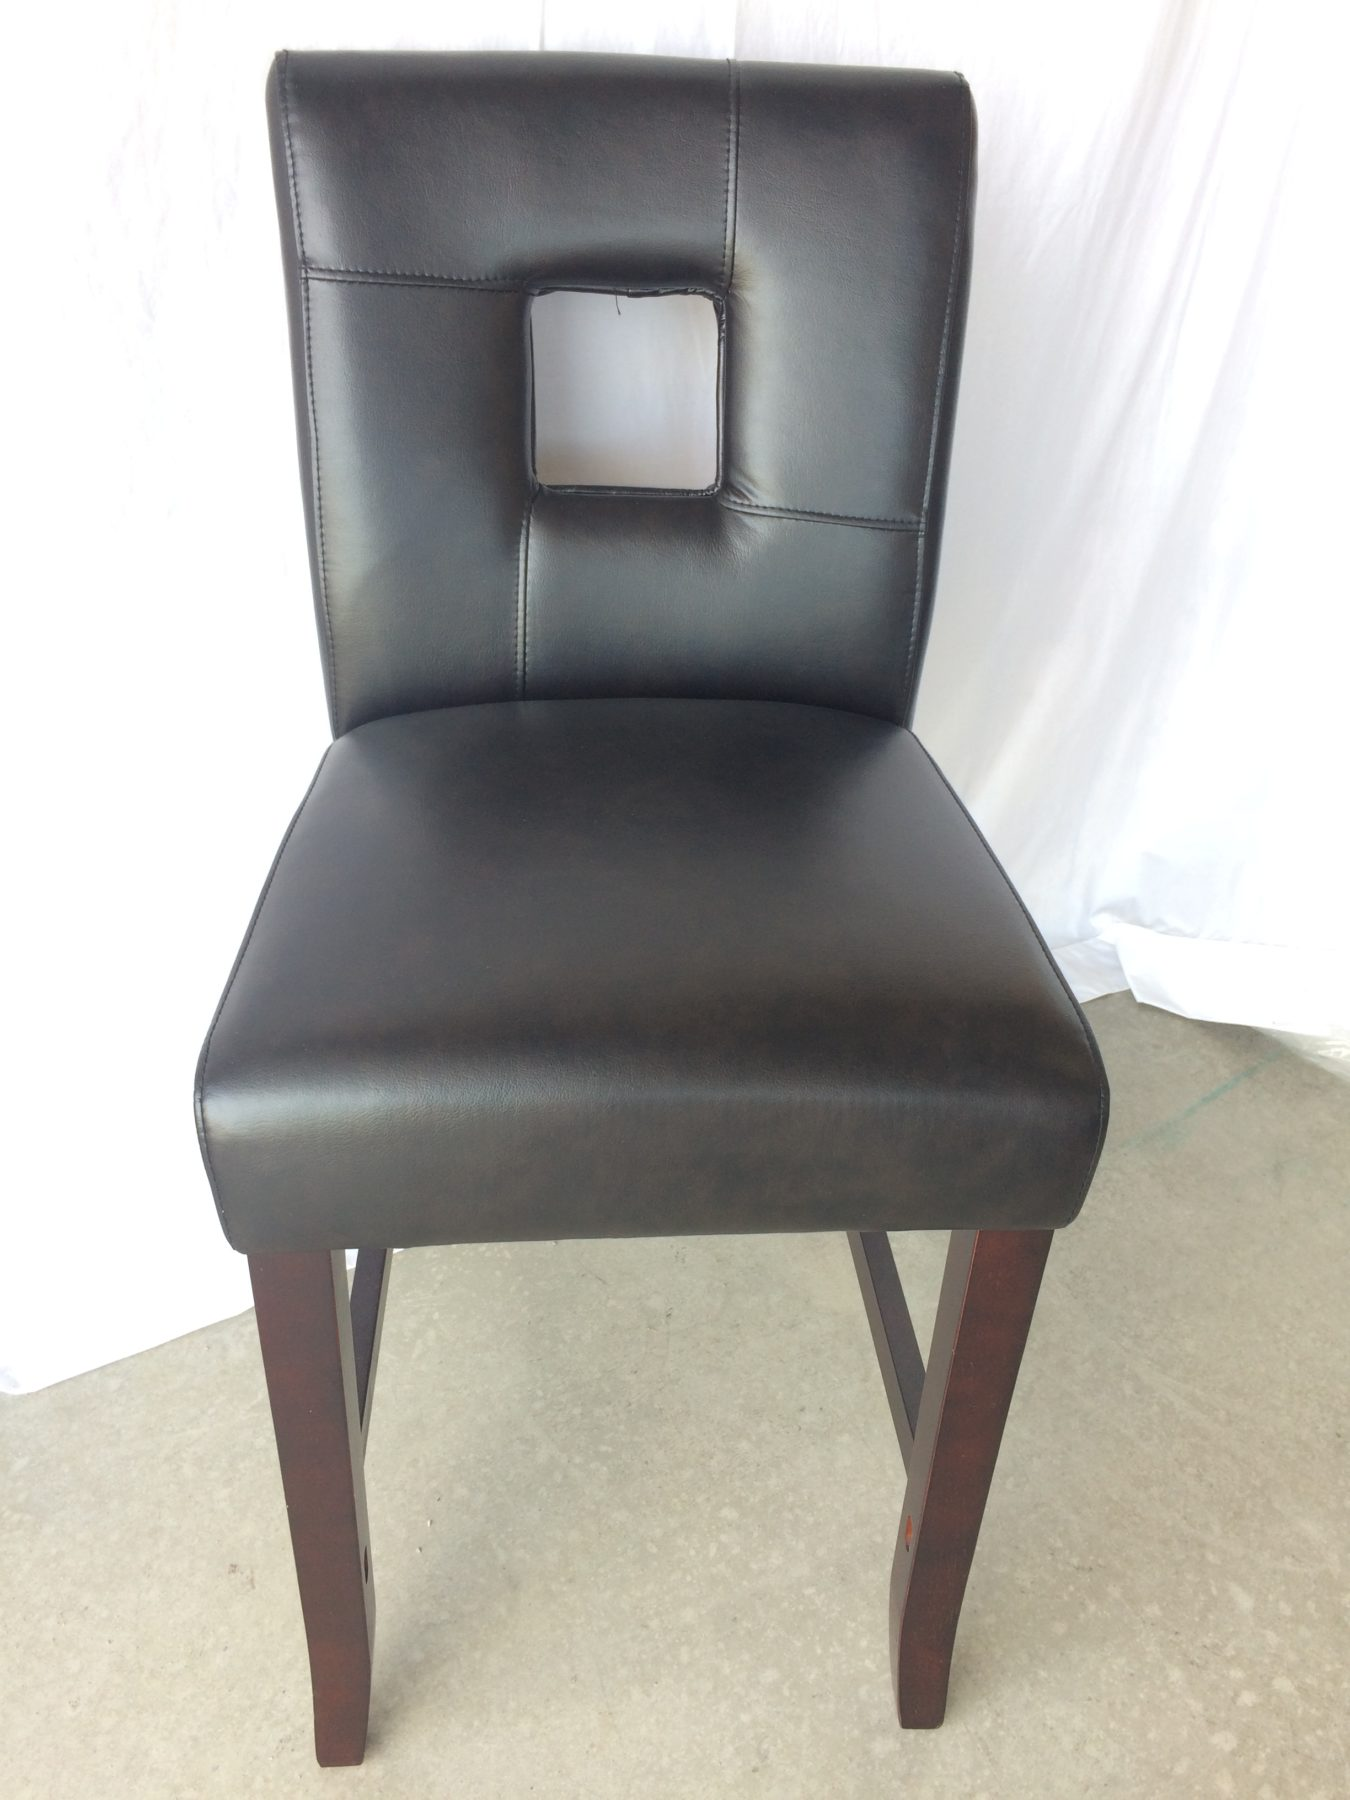 Black Leather Barstool/bistro Chair With Square Back U2013 Mu0026M Home Staging U0026  Furniture Rentals